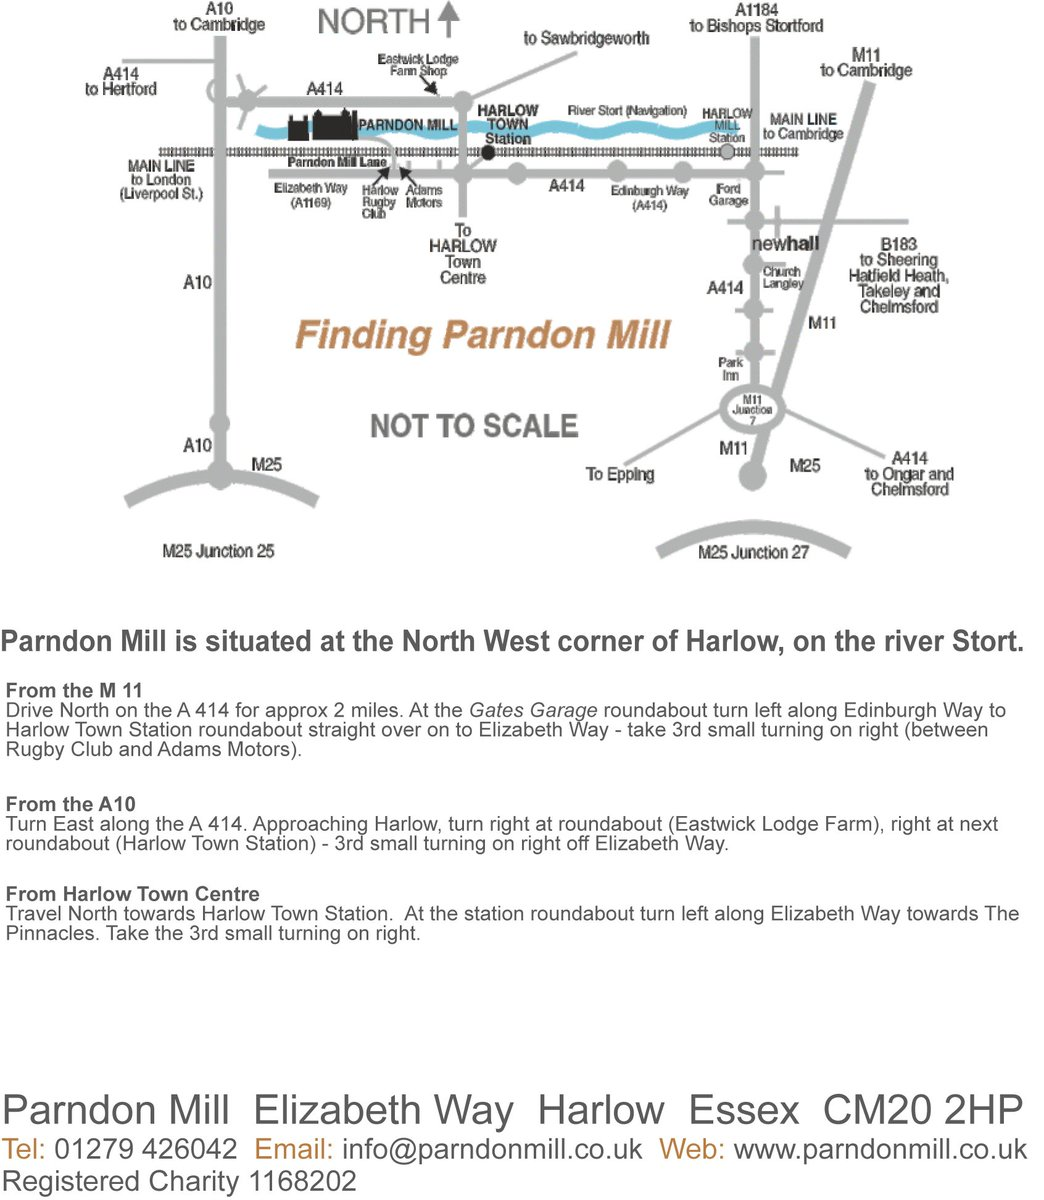 "Parndon Mill on Twitter: ""The Gallery here @Parndonmill - Where are we you ask? We want you to find us, visit us, enjoy it here, so see the map we have ..."